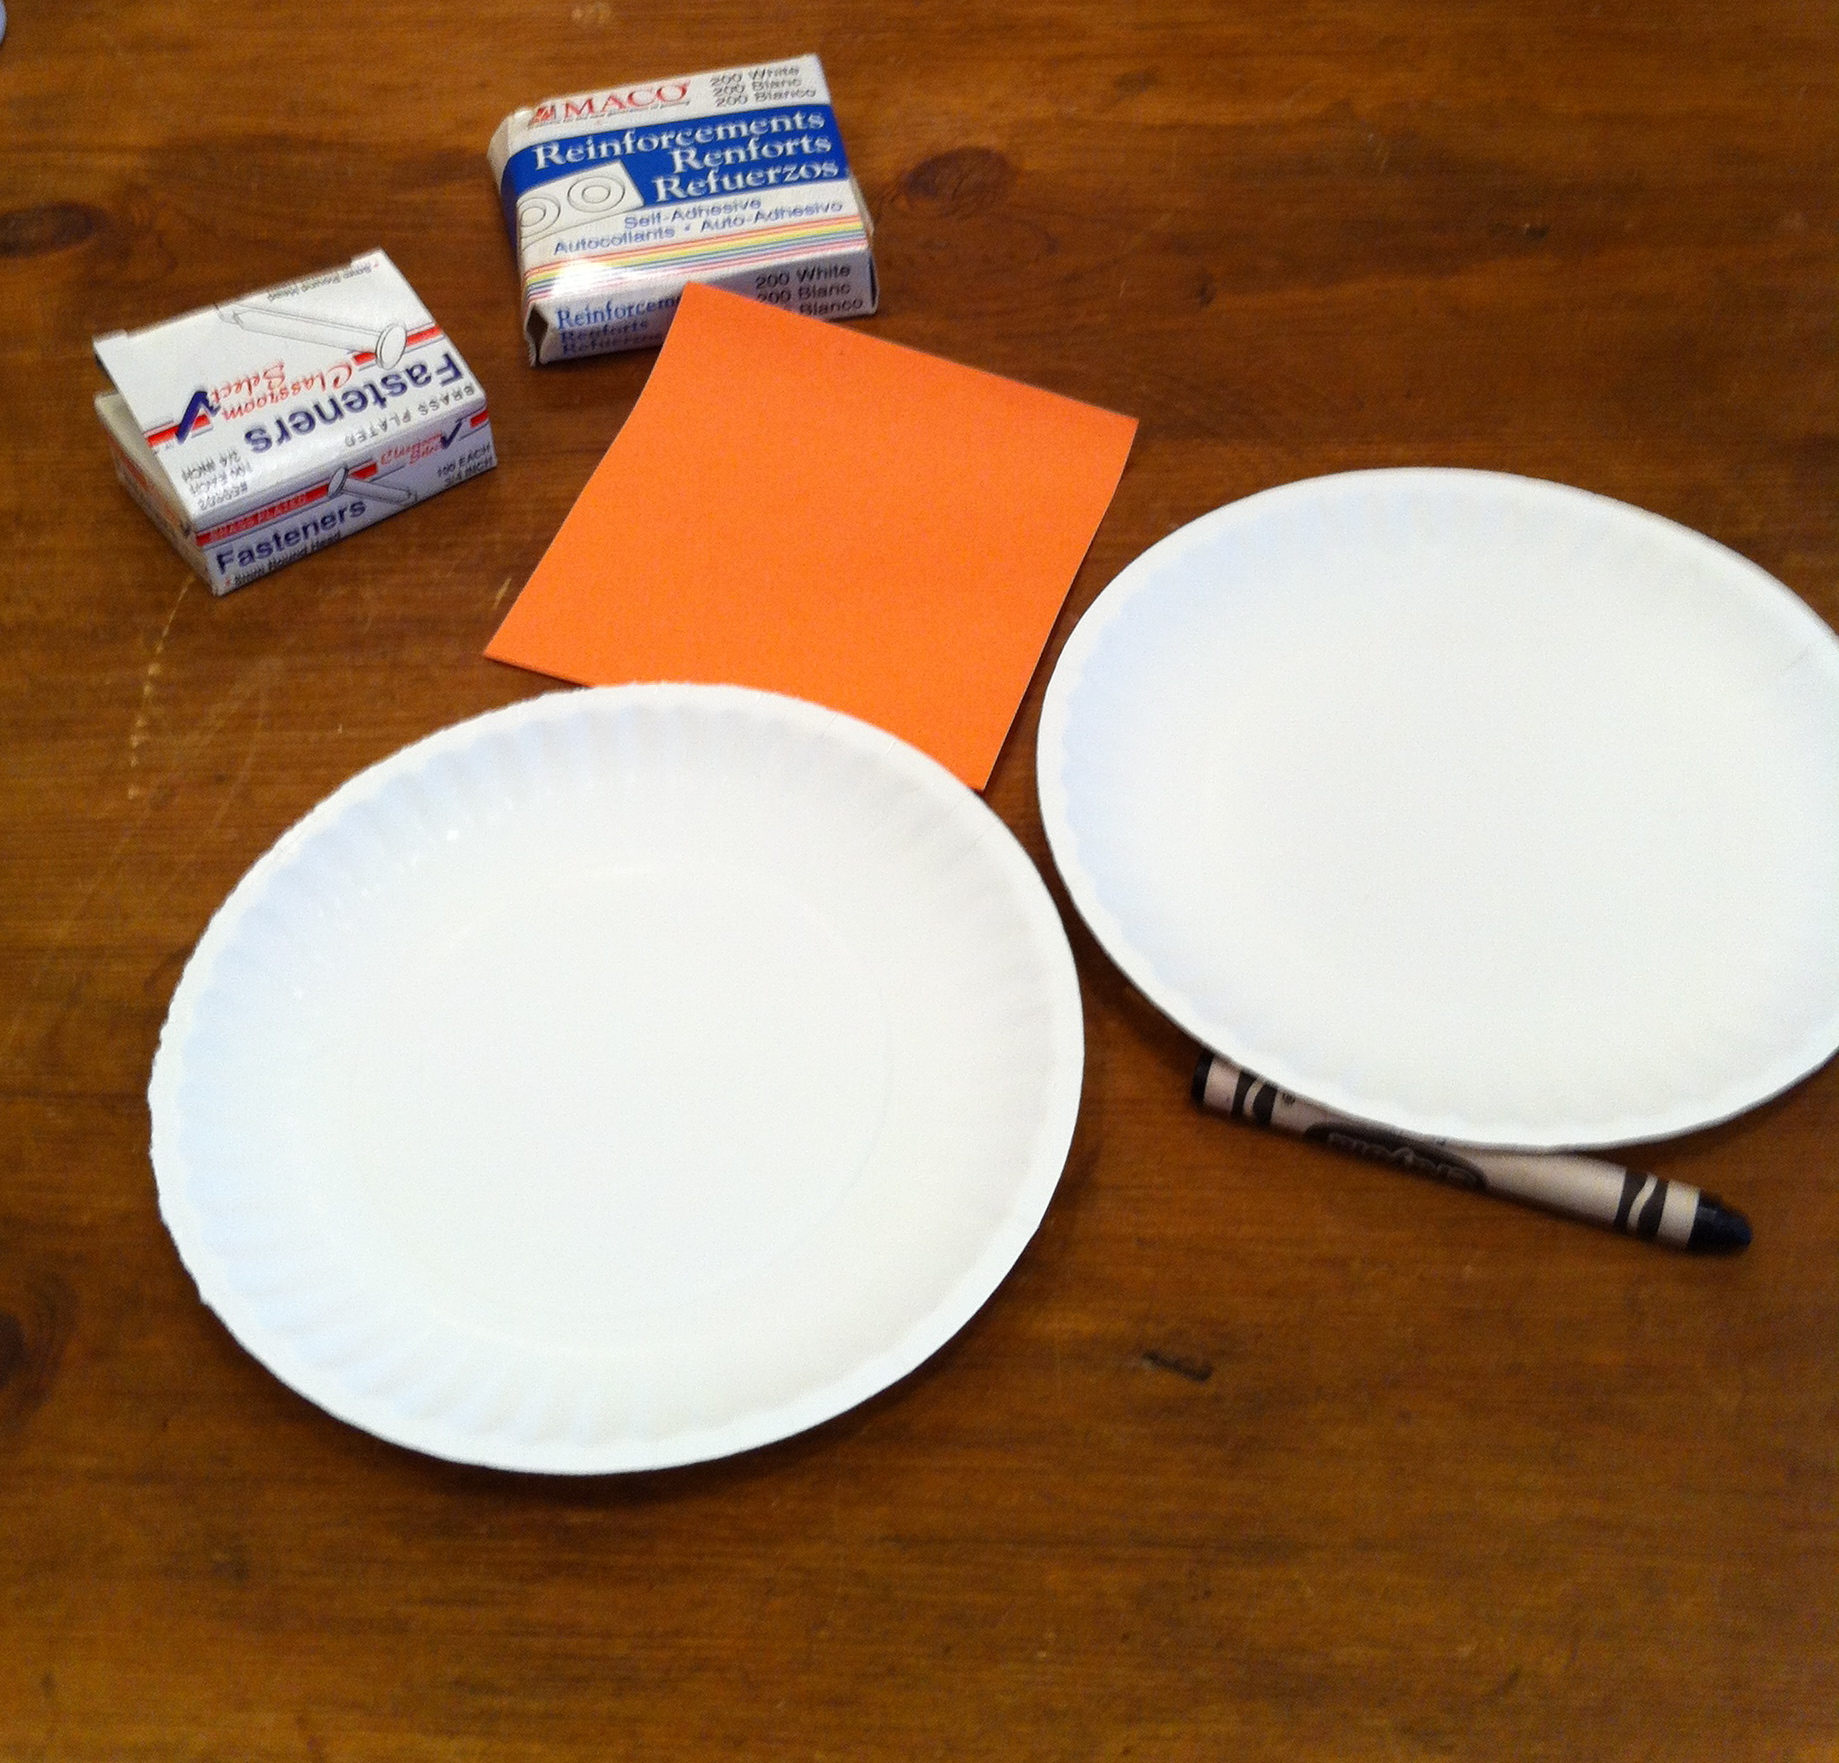 To make these perky pals youu0027ll need two paper plates some orange construction paper a black crayon two paper reinforcing circles u0026 3 brads. & paper plate arts u0026 crafts | Fragile Earth Blog